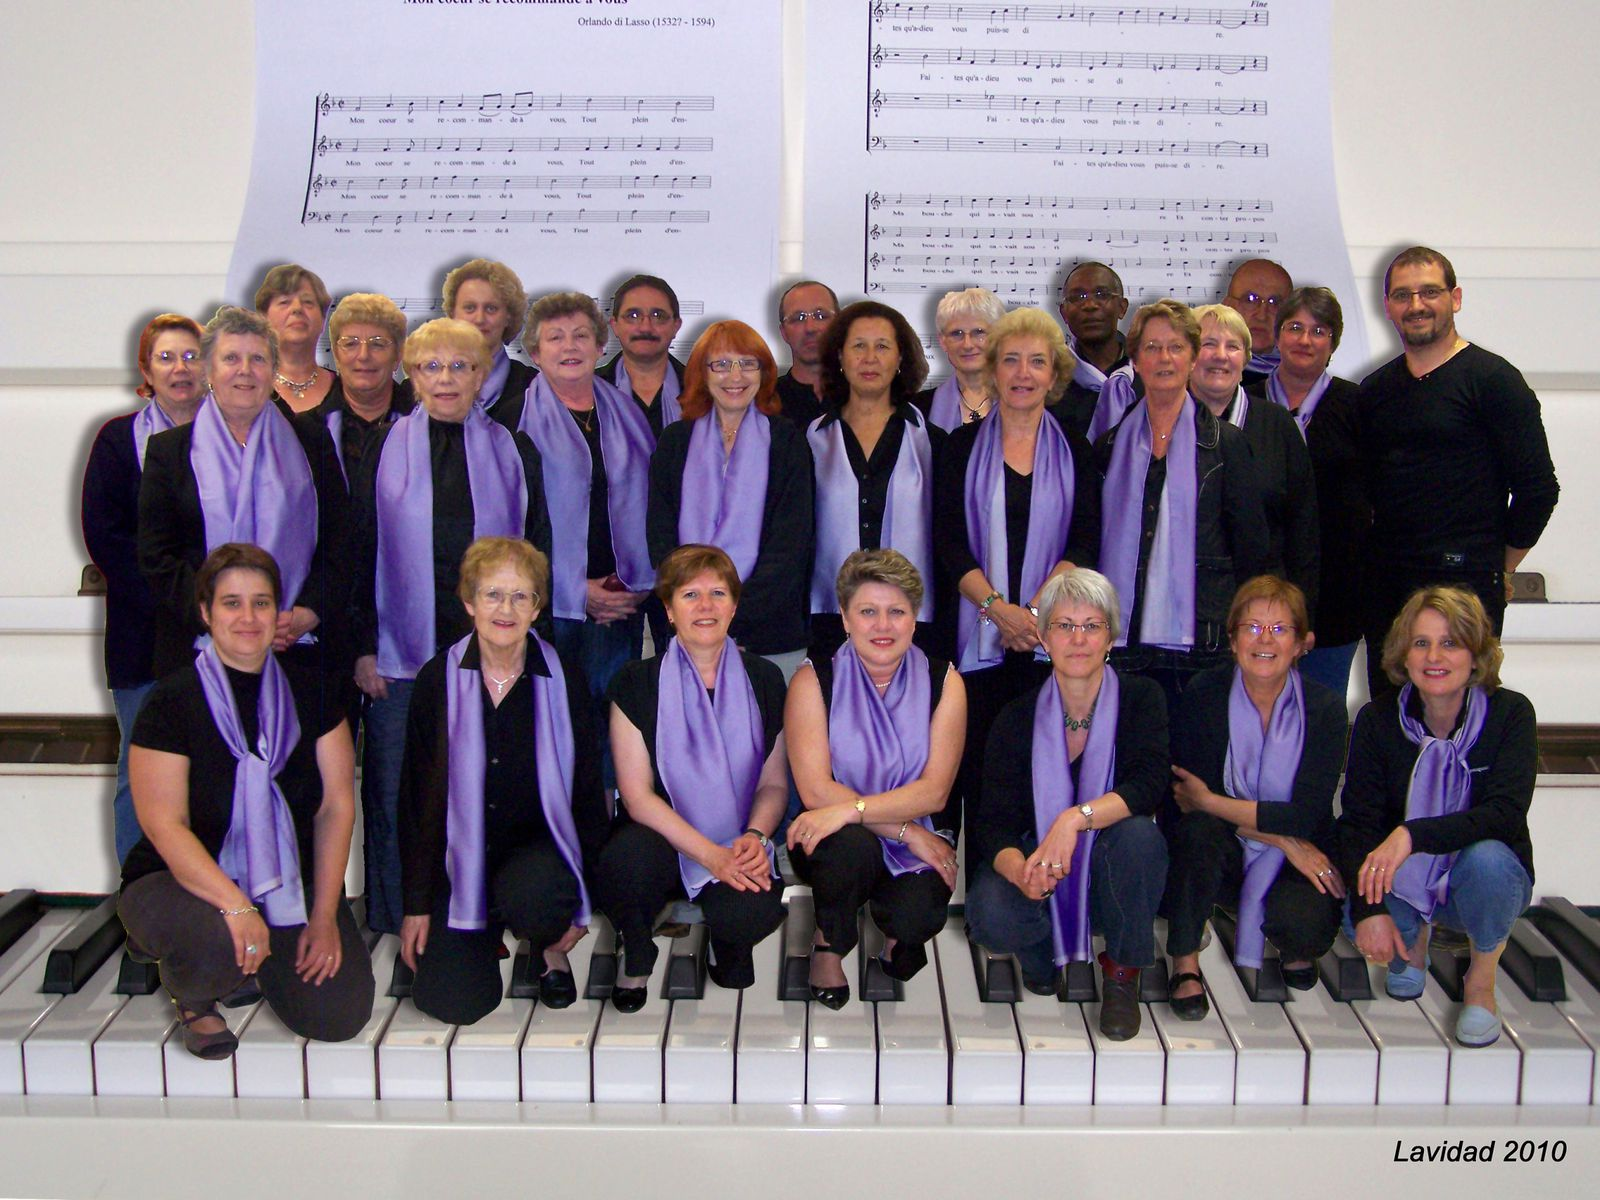 http://idata.over-blog.com/2/21/52/69/2010/Juin/Groupe-Chorale--2010-piano-6.jpg